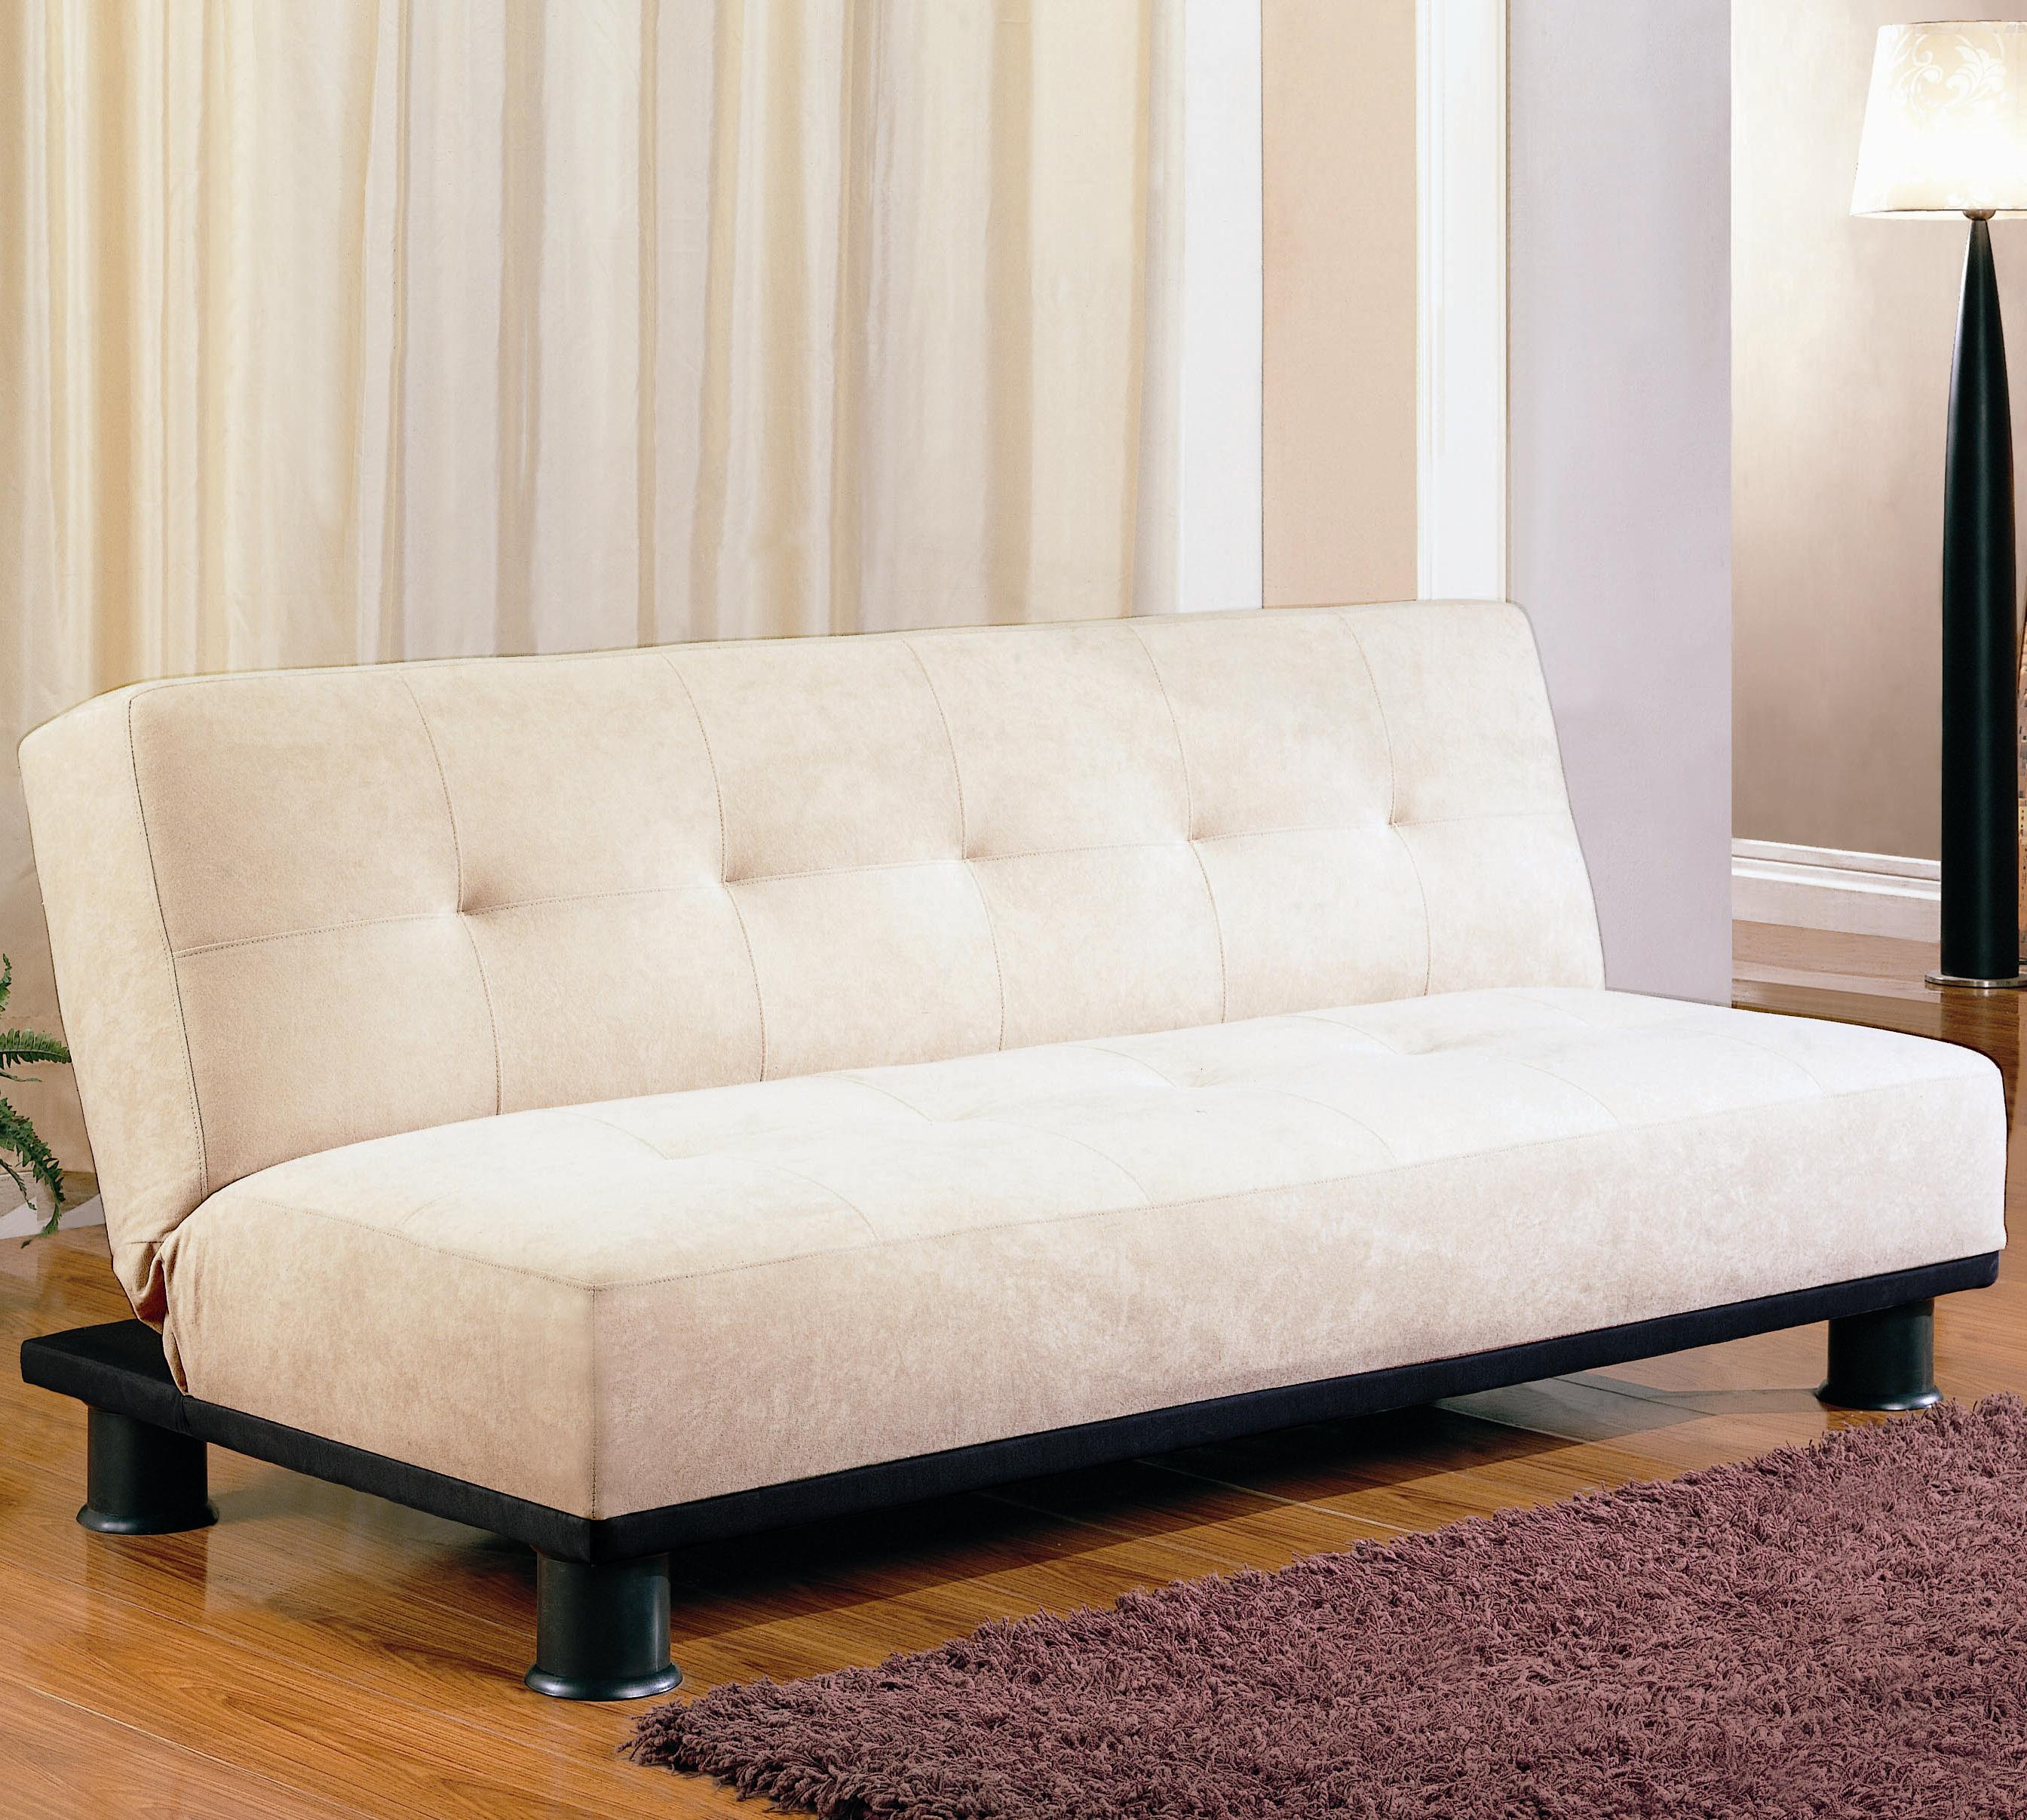 henley dhp metal frame home overstock product base futons arm futon free shipping today garden